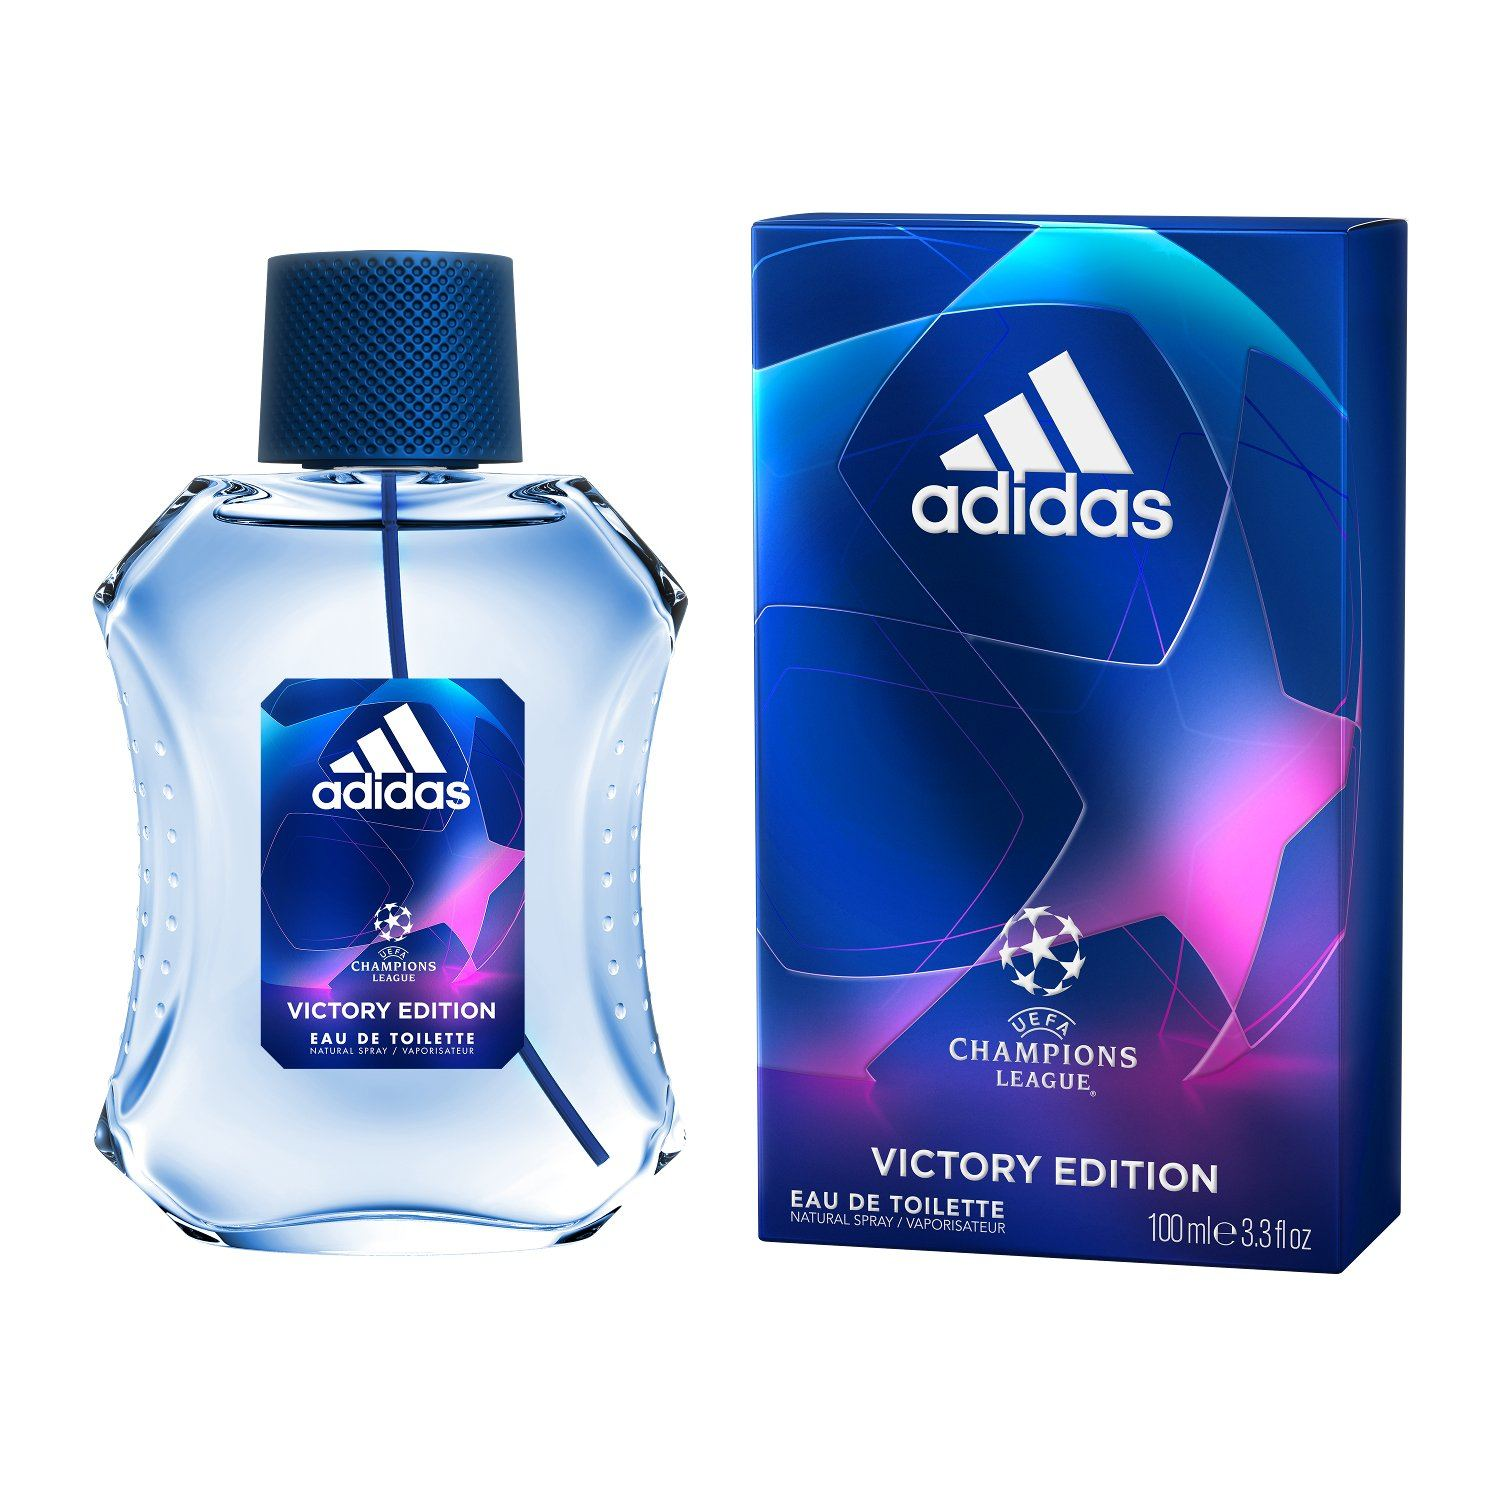 Adidas Champions League Victory Edition 100ml EDT